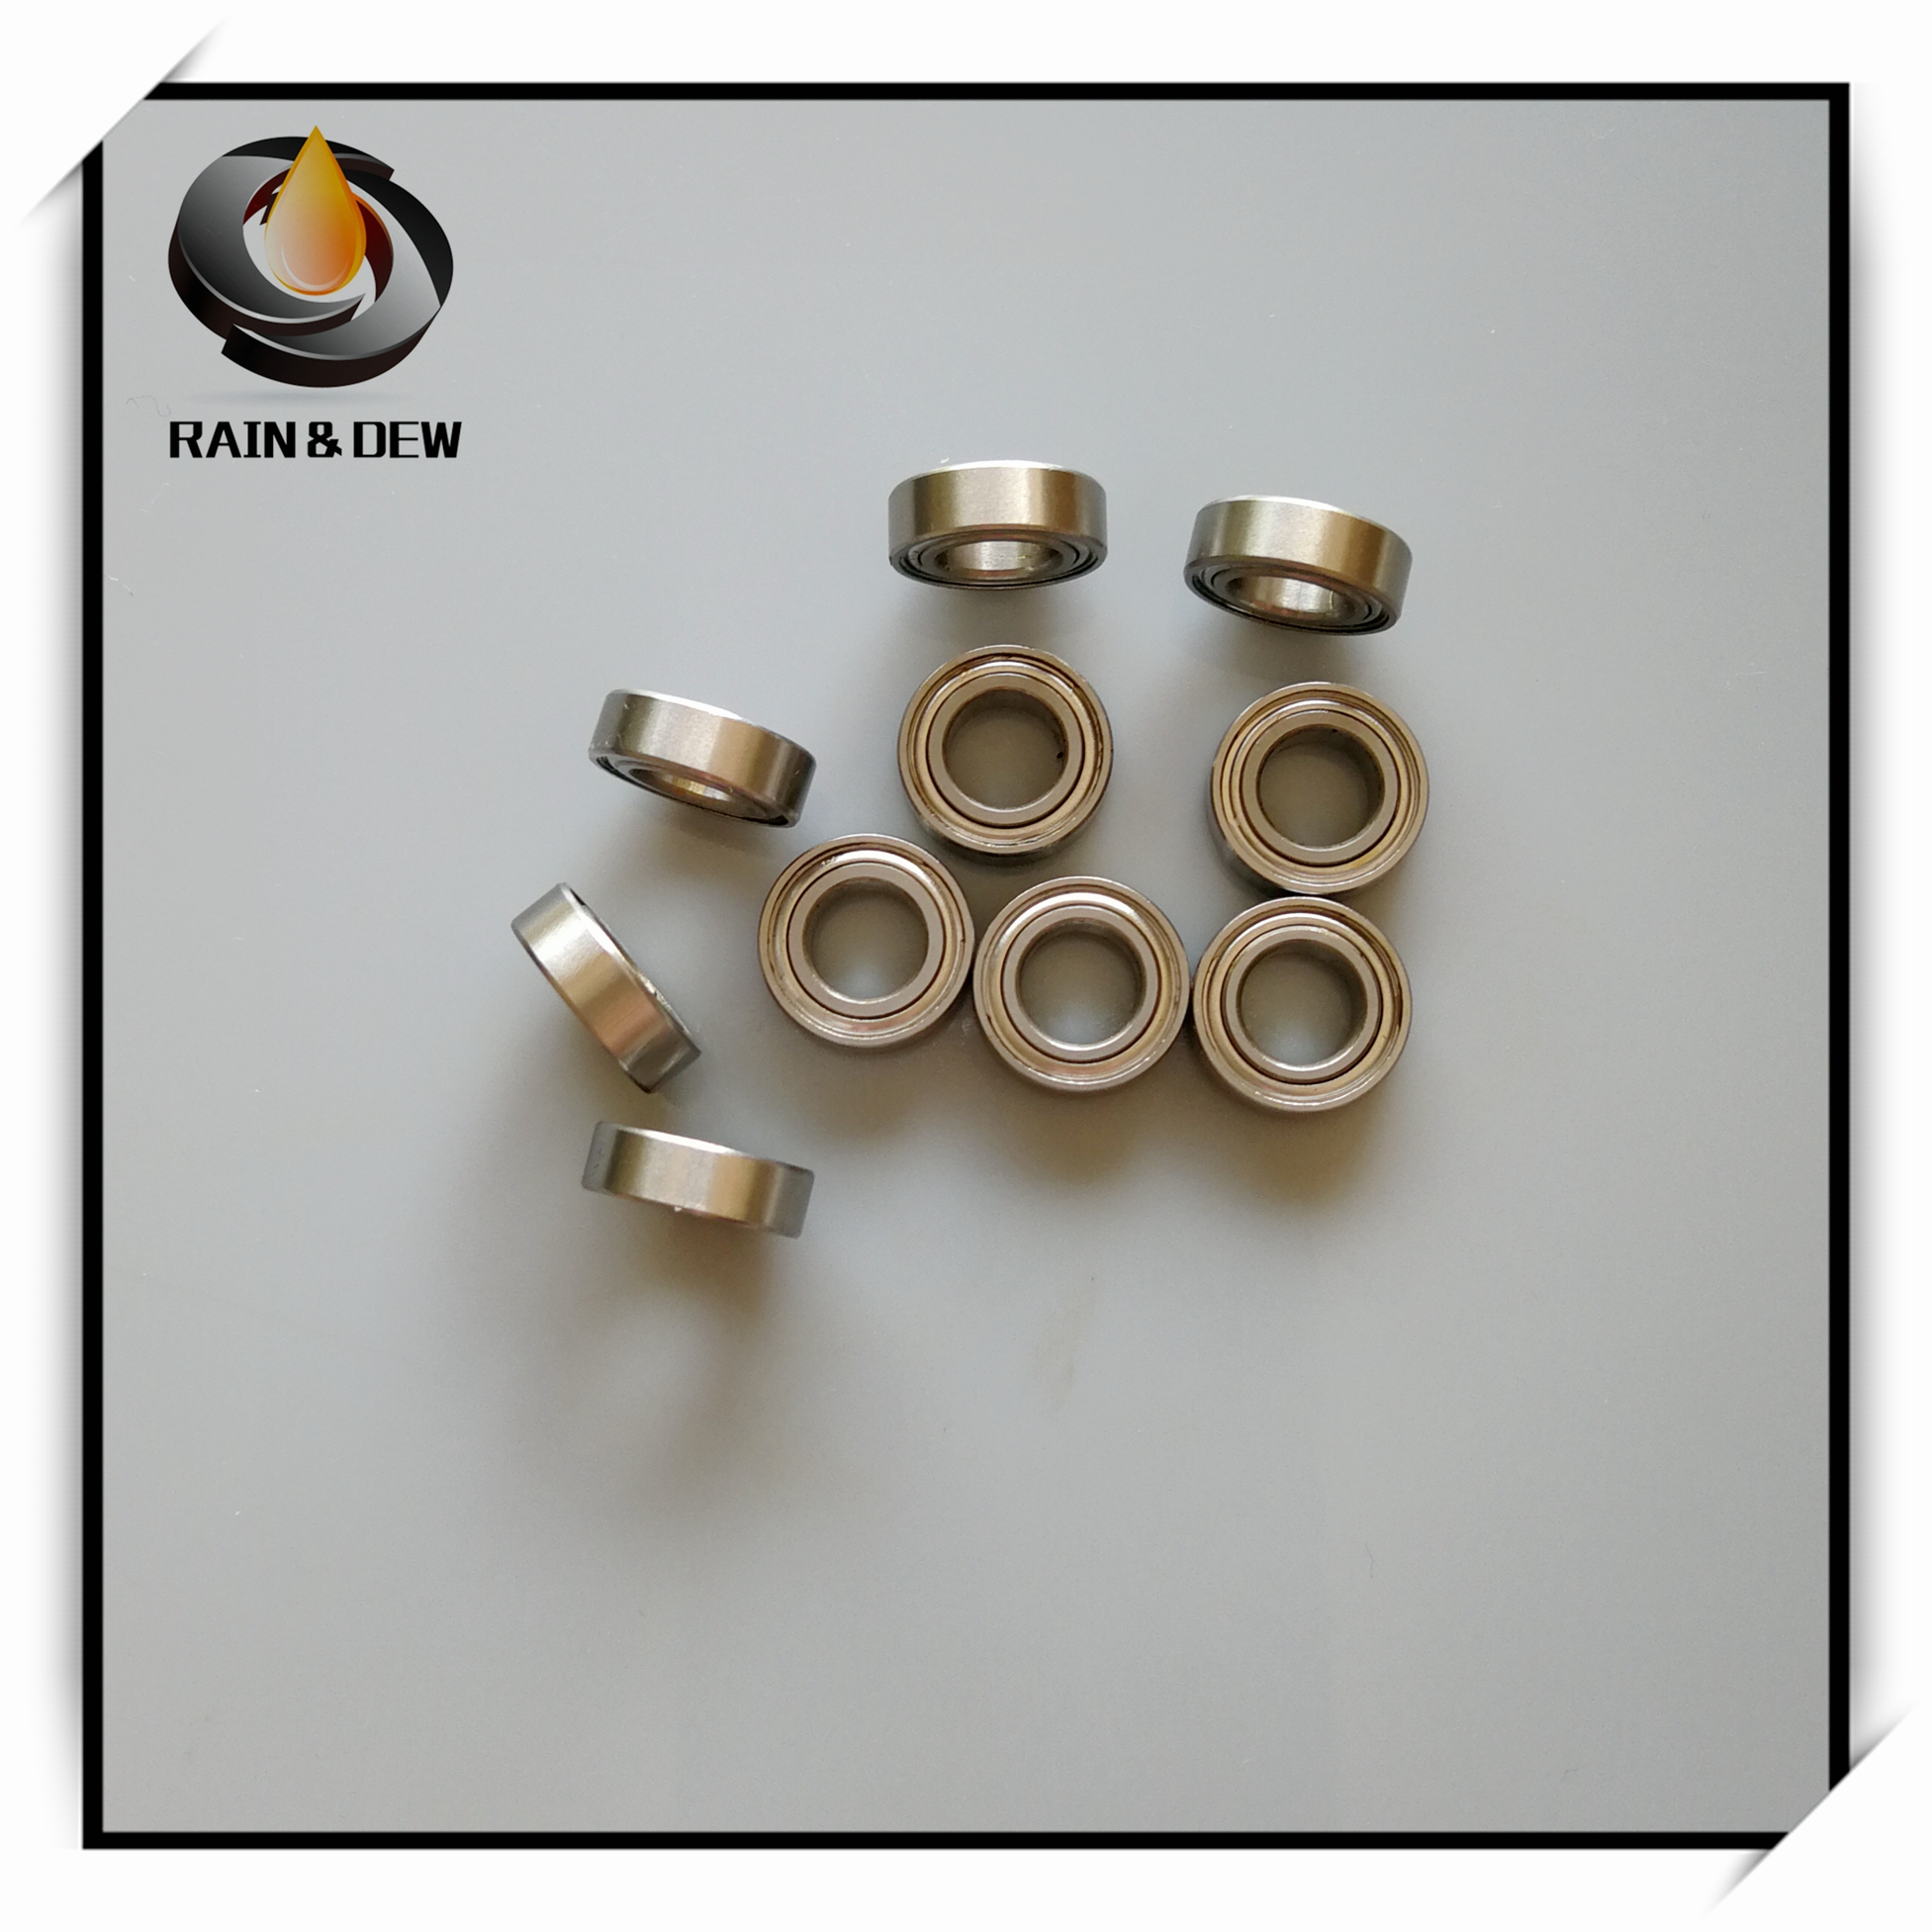 1Pcs  SMR137ZZ CB ABEC7 7X13X4 Mm MR137 Stainless Steel Hybrid Ceramic Ball Bearing  Fishing Vessel Bearing